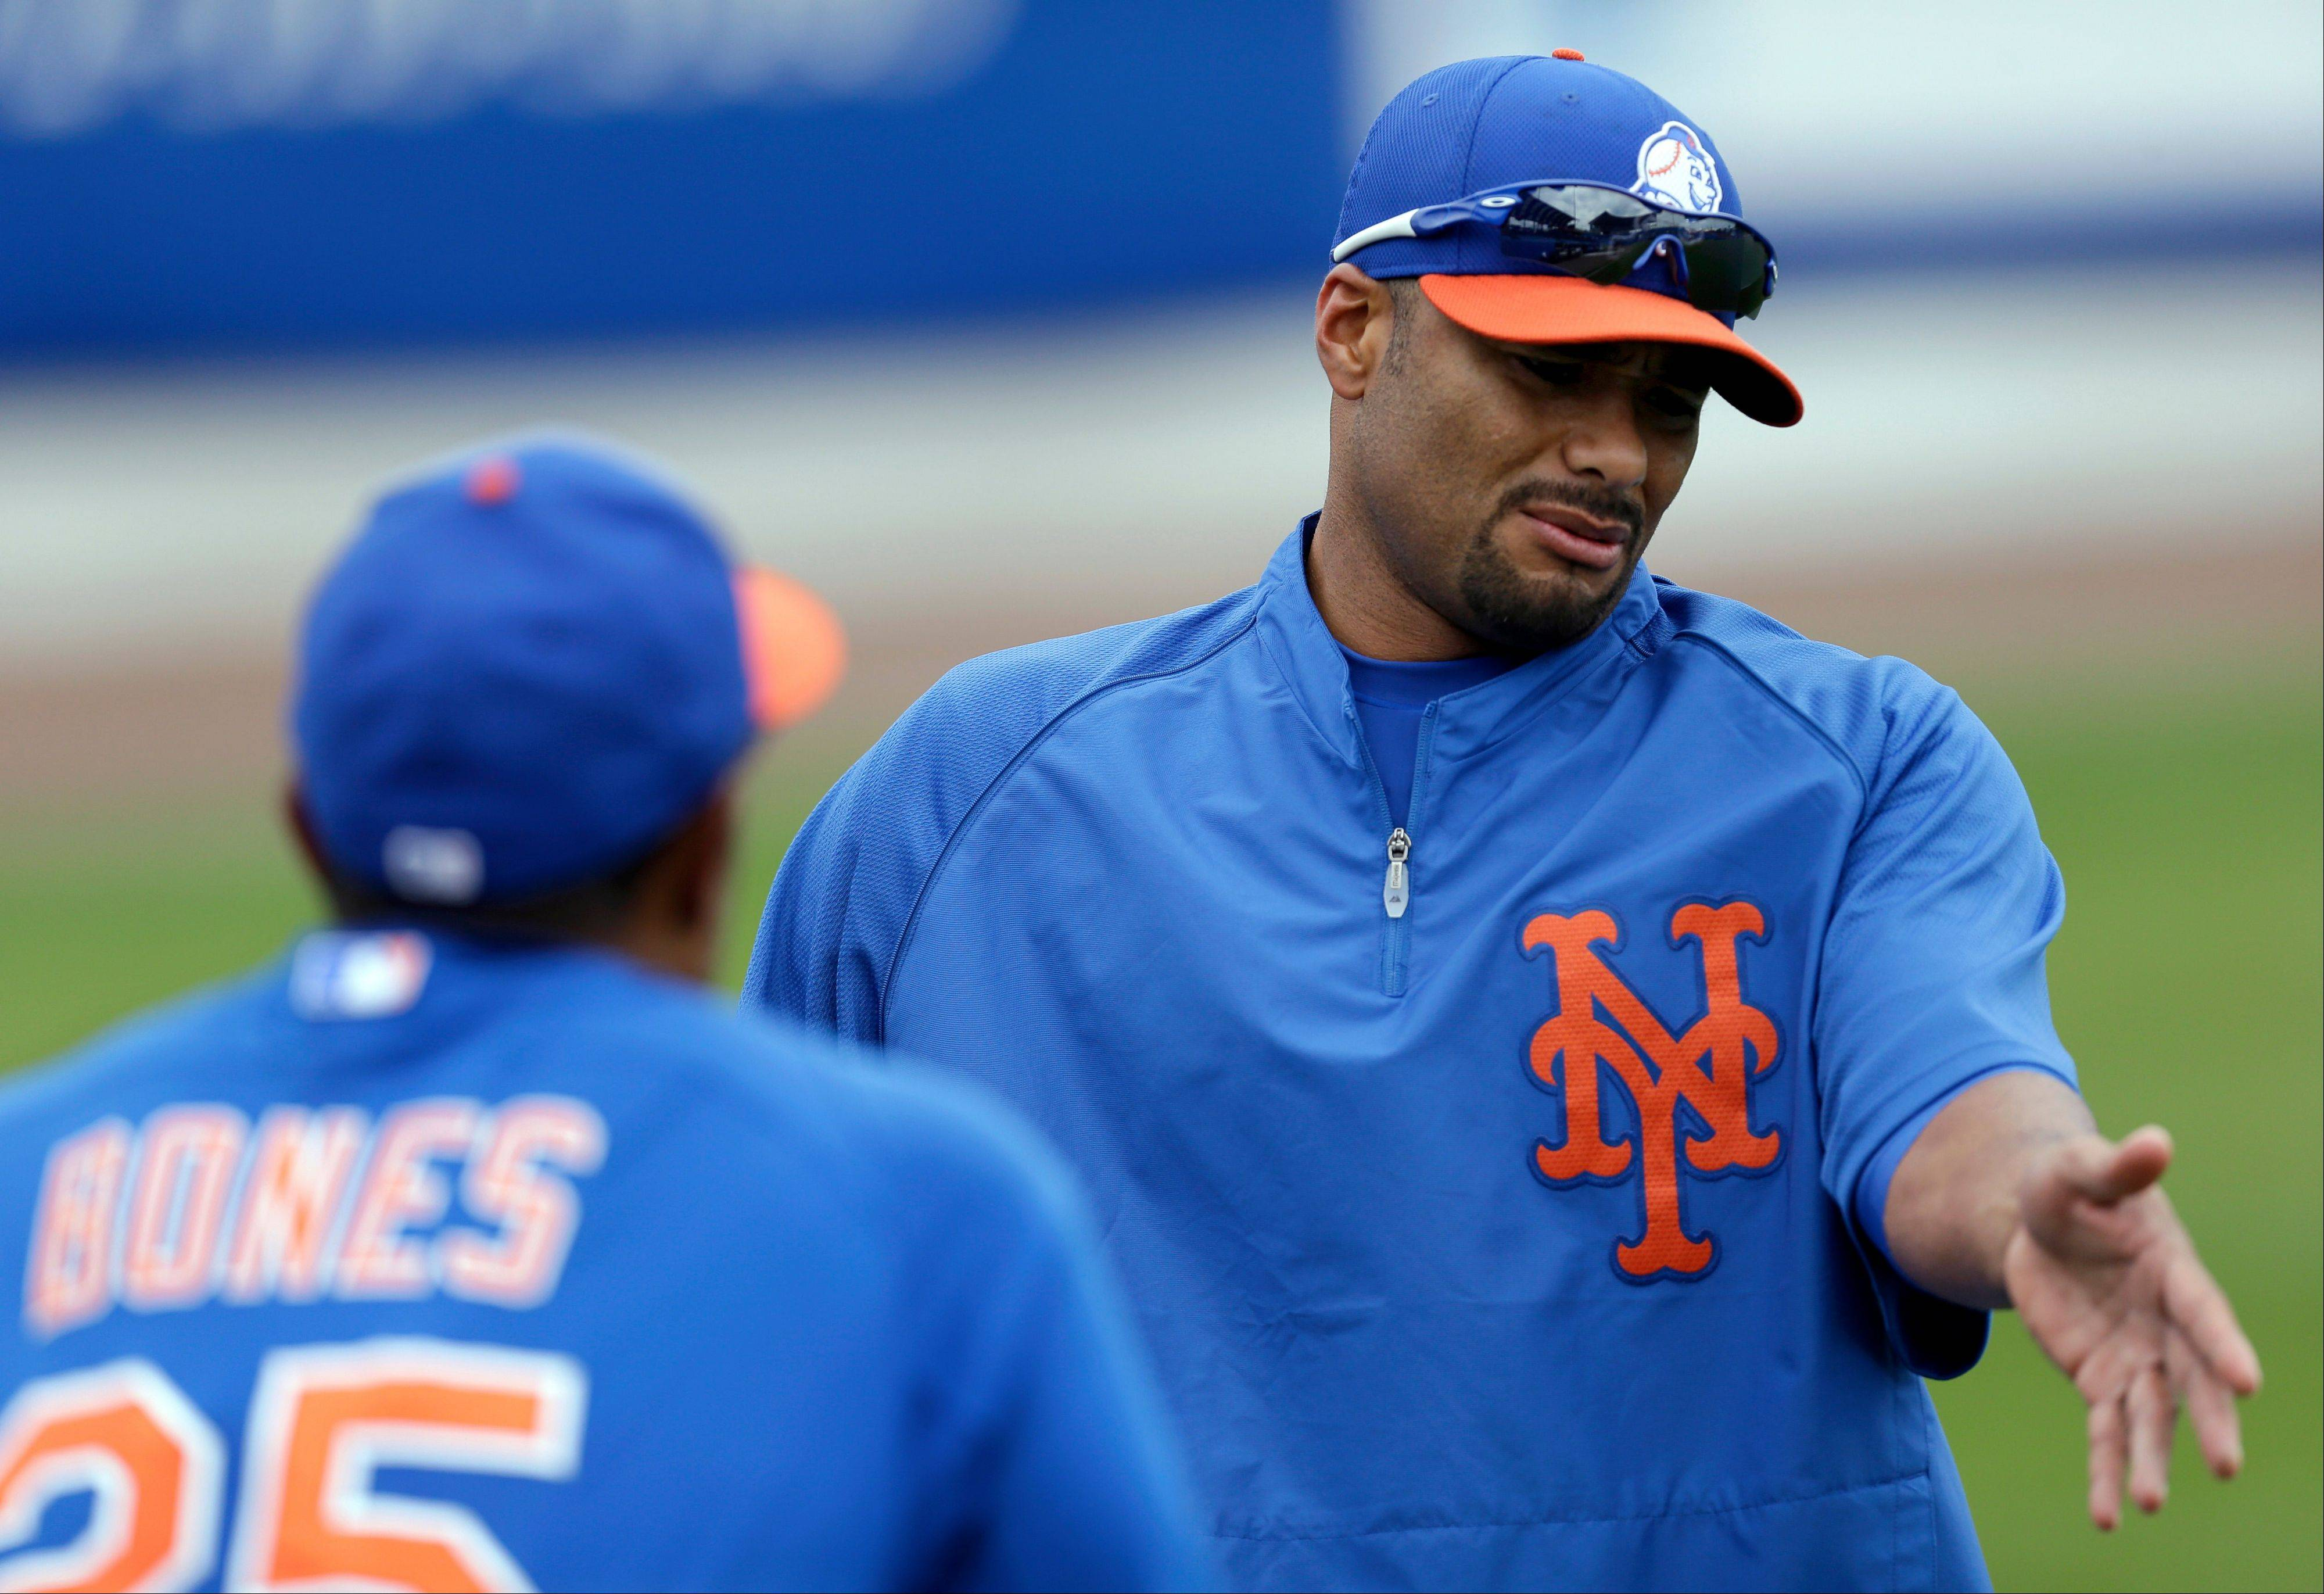 In this March 1, 2013, photo, New York Mets pitcher Johan Santana, right, talks to bullpen coach Ricky Bones (25) before the Mets' spring training baseball game against the Detroit Tigers in Port St. Lucie, Fla. The Mets say Santana has injured his left shoulder again and likely will need surgery and miss the 2013 season.